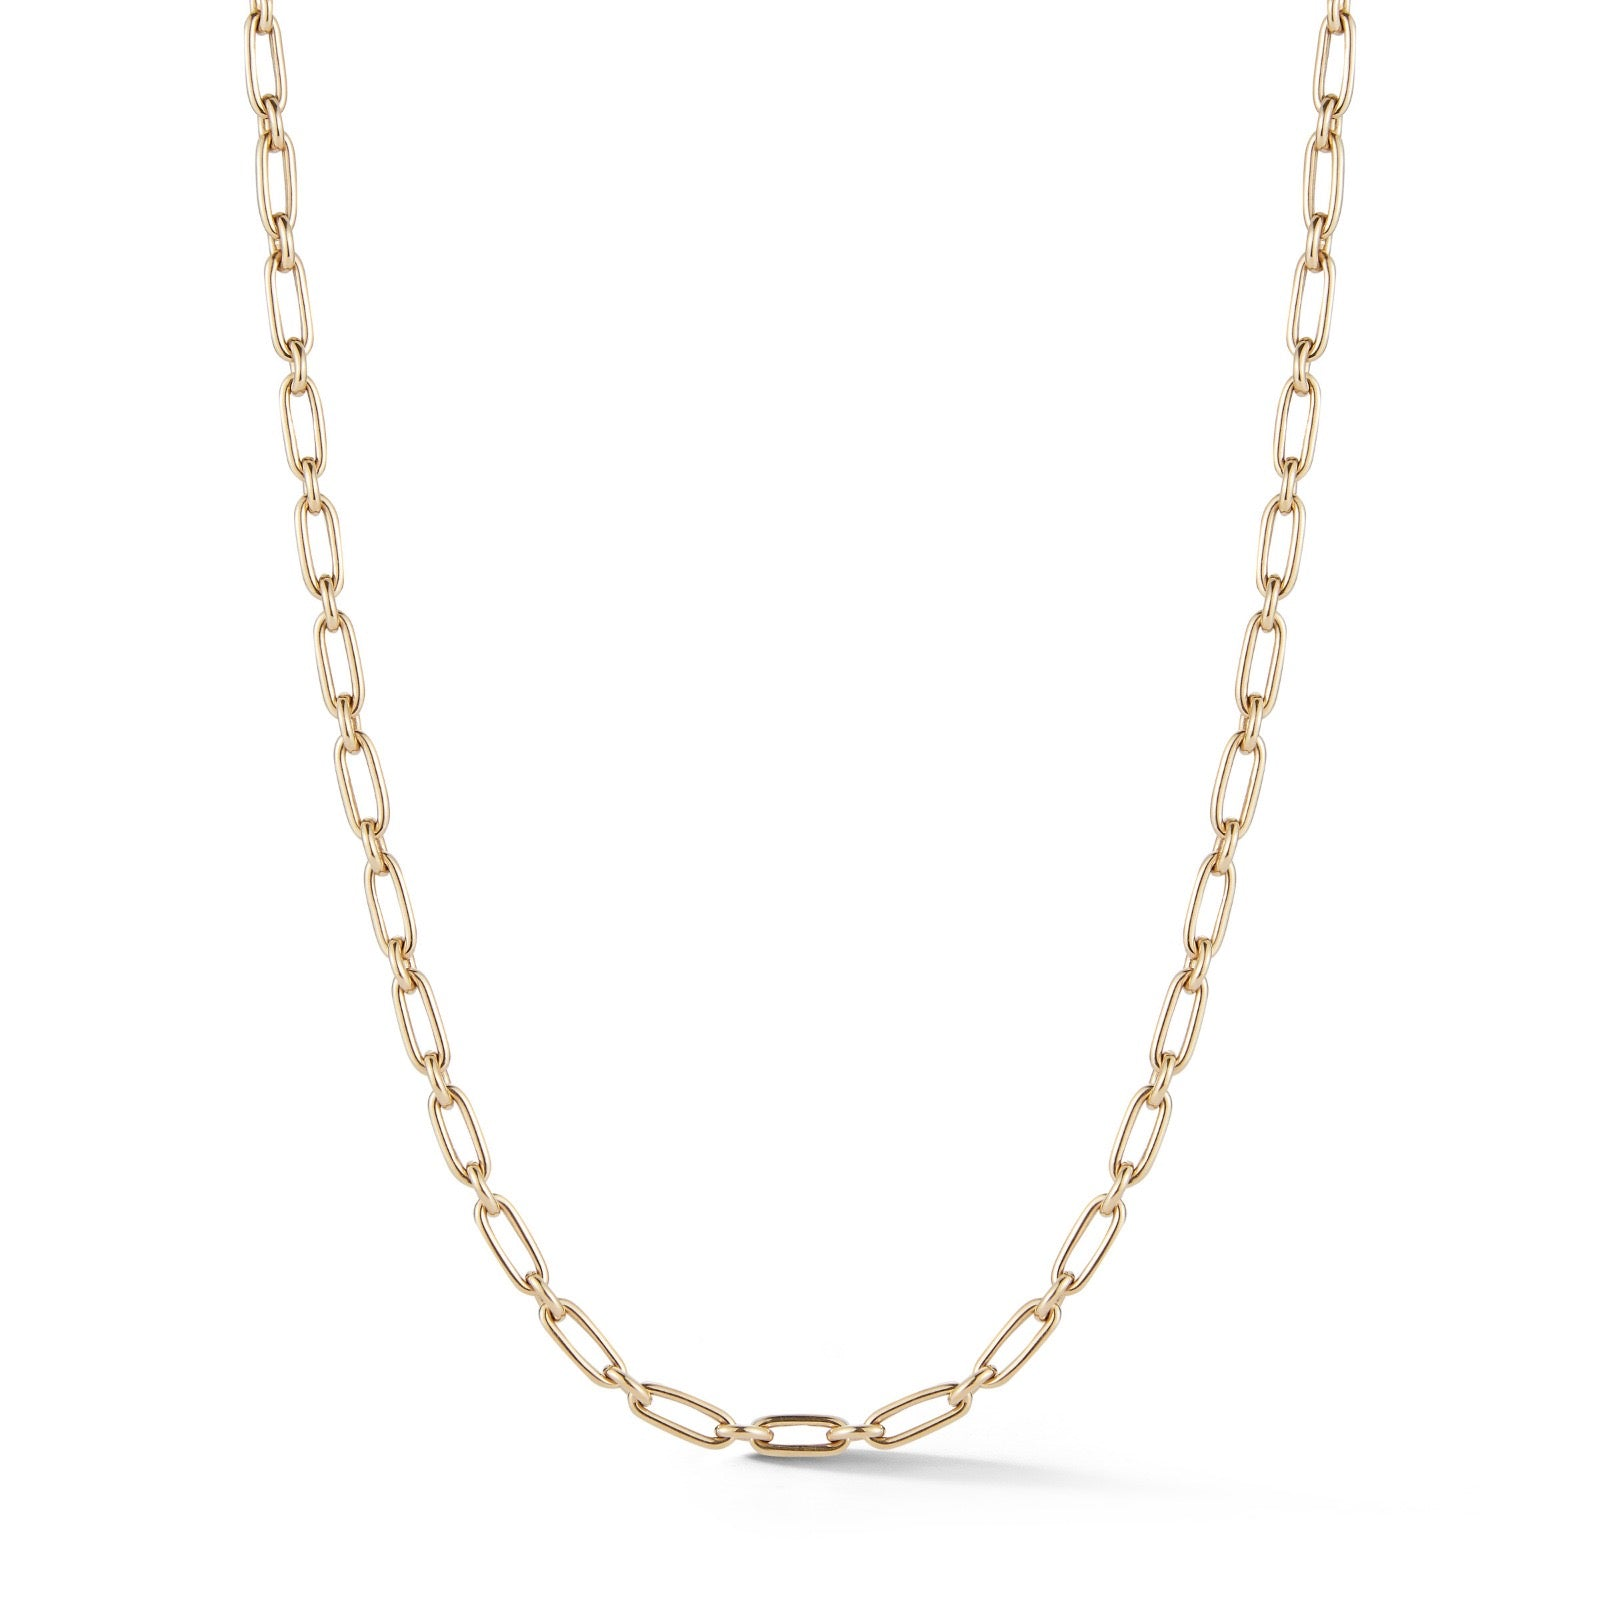 "14K Gold Heavy Alternating Elongated Link Handmade 20"" Oscar Chain"